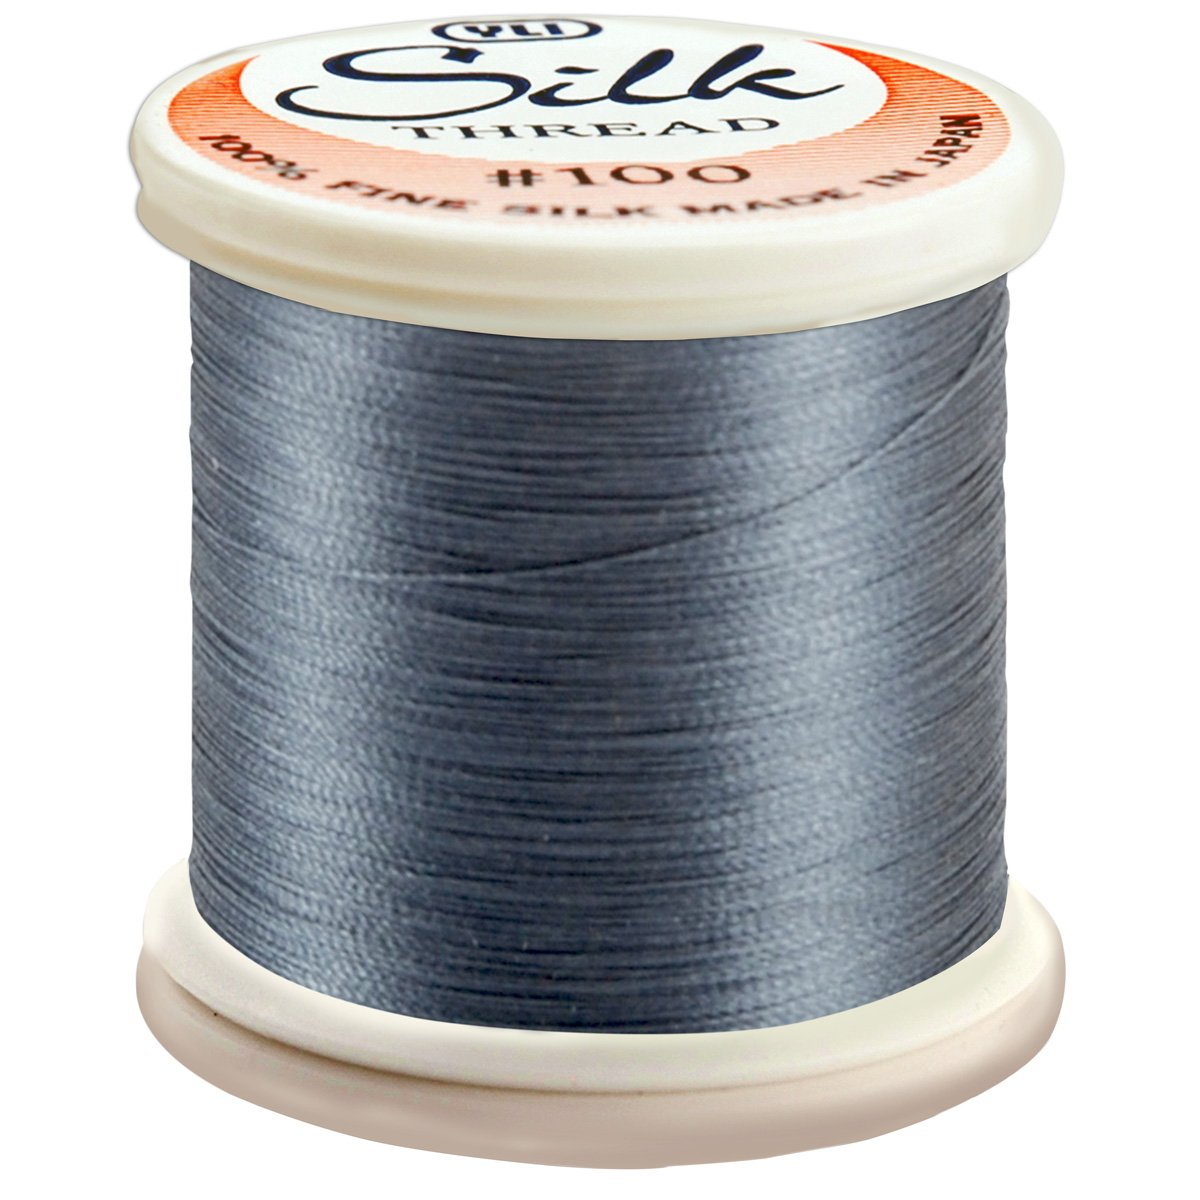 YLI Corporation 202-10-225 Thread Silk 100 Weight 200 Meters 20210-225